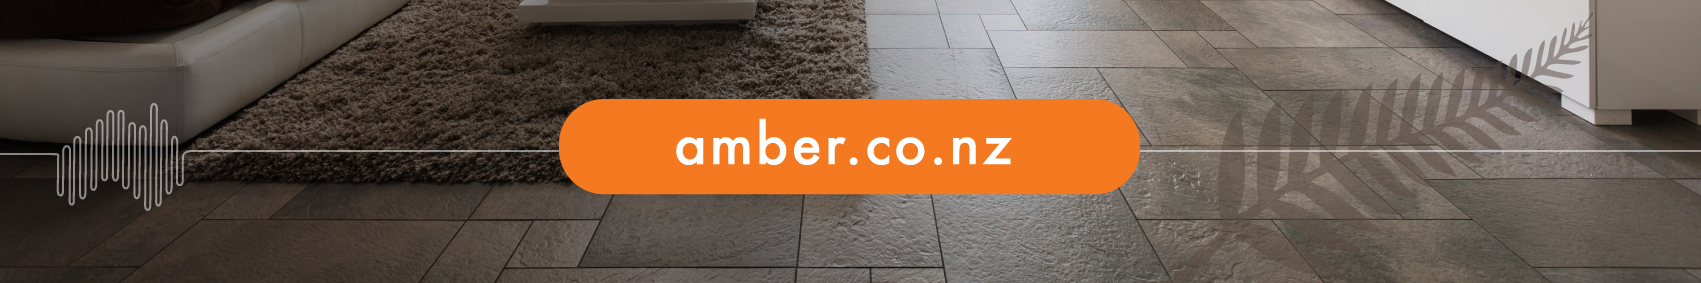 NZ-Residential-Footer